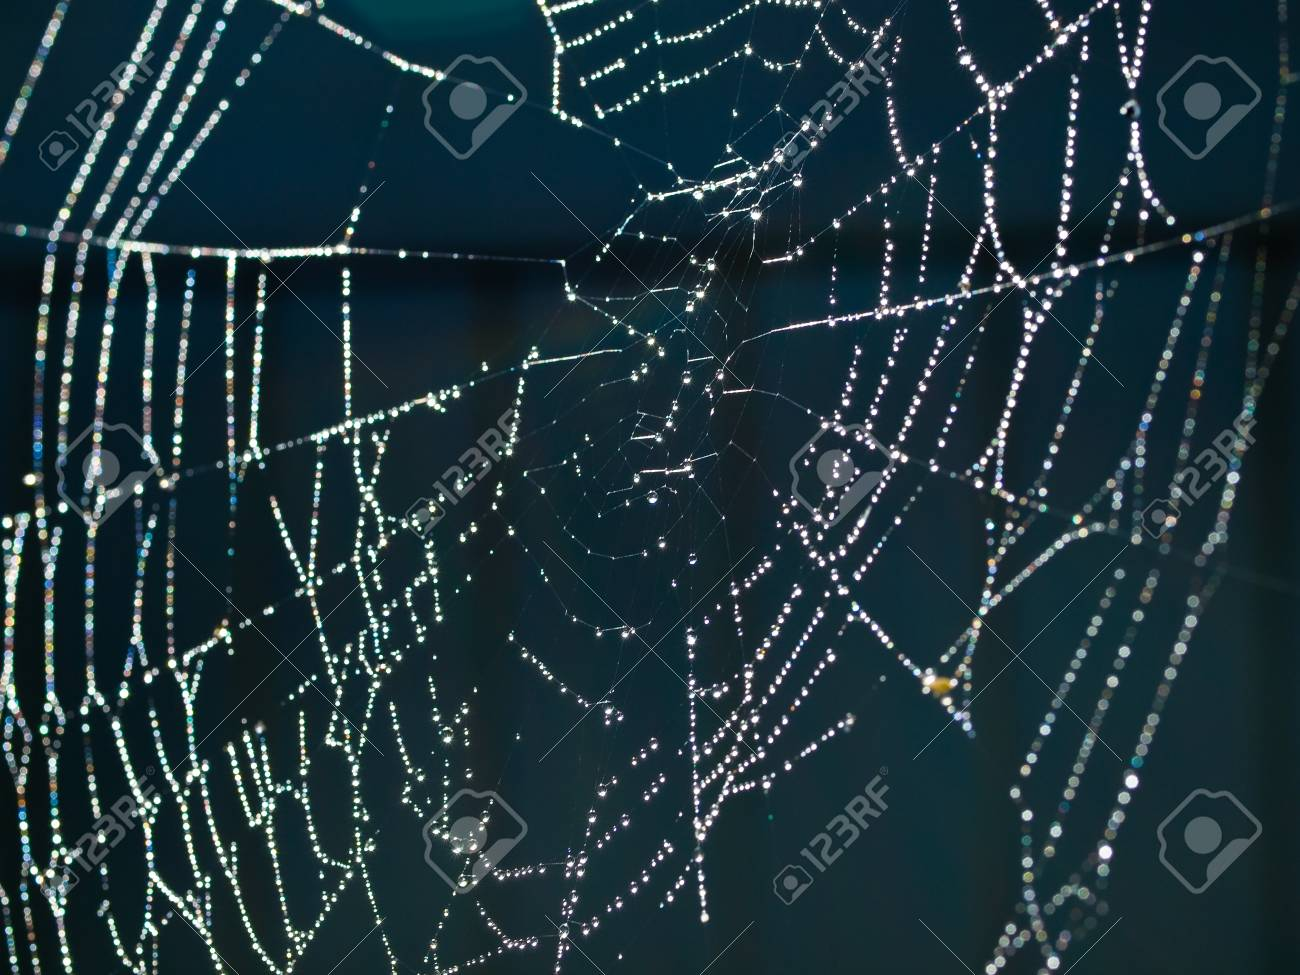 Spider Web Covered with Sparkling Dew Drops Stock Photo - 8275014